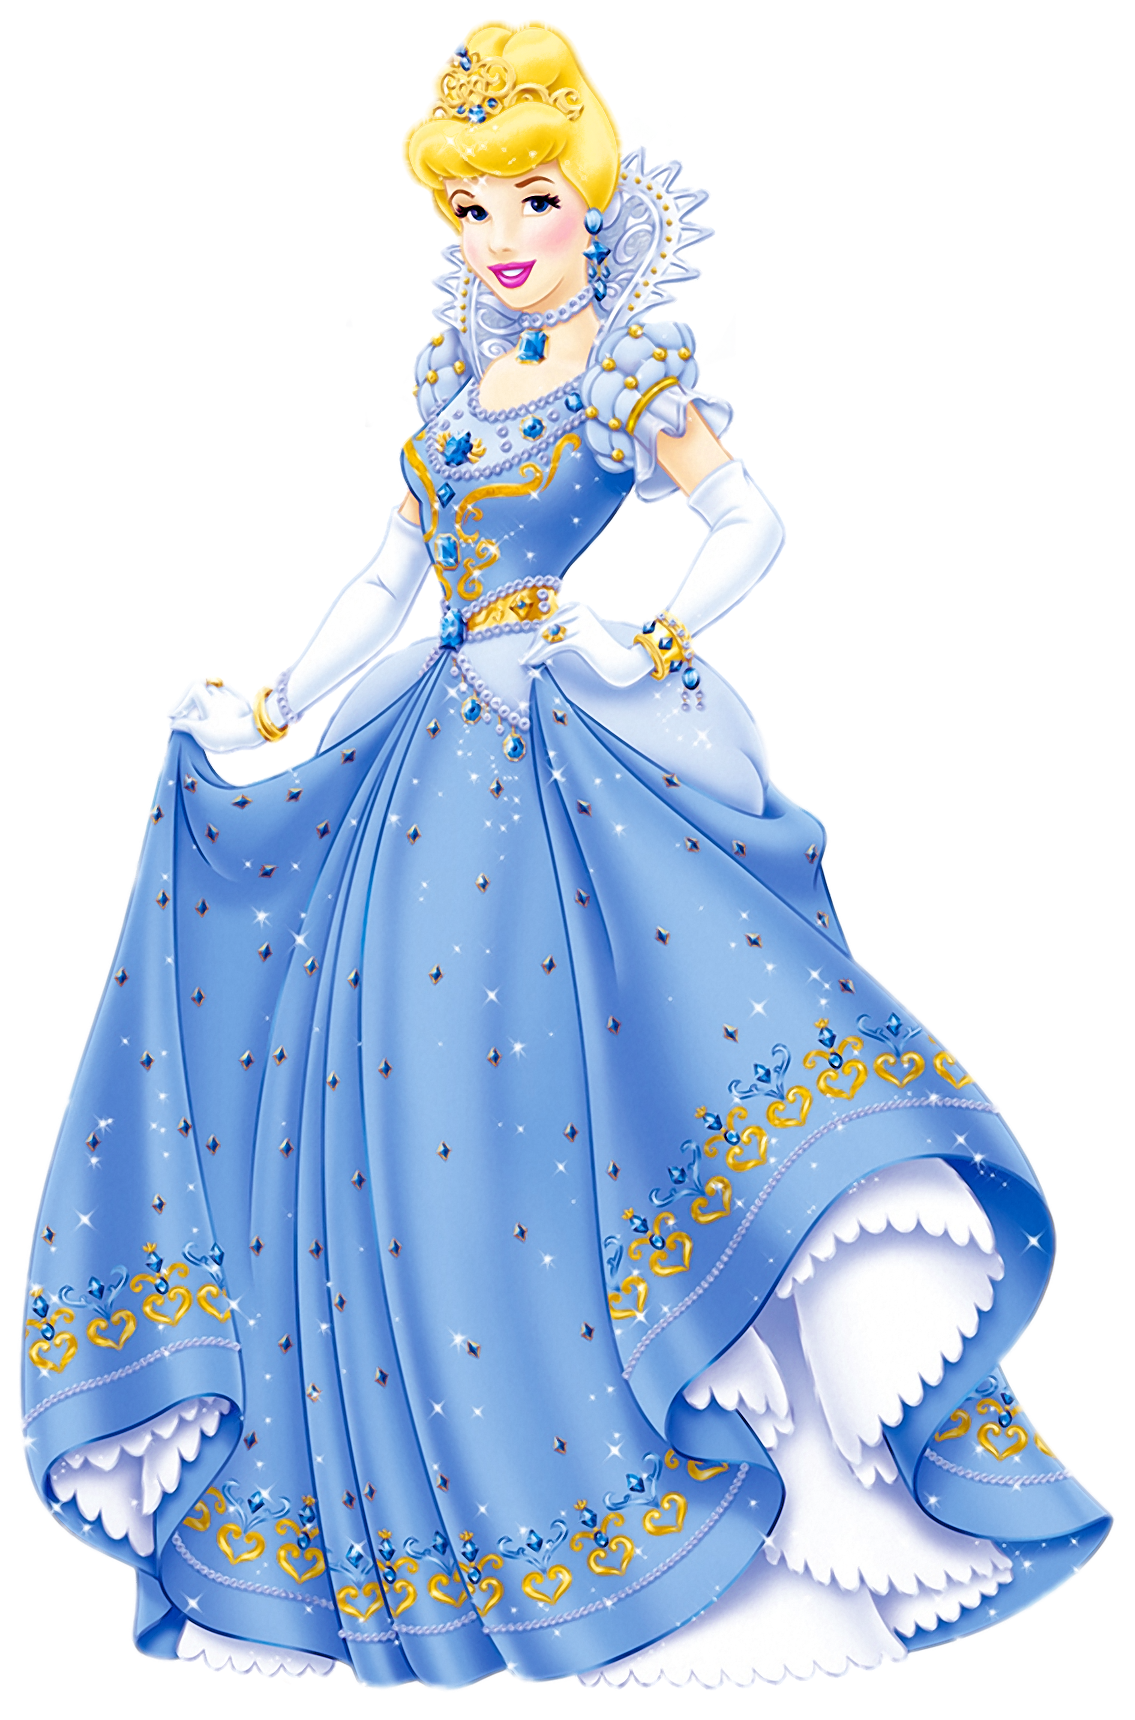 Magic clipart transparent. Princess png cinderella disney